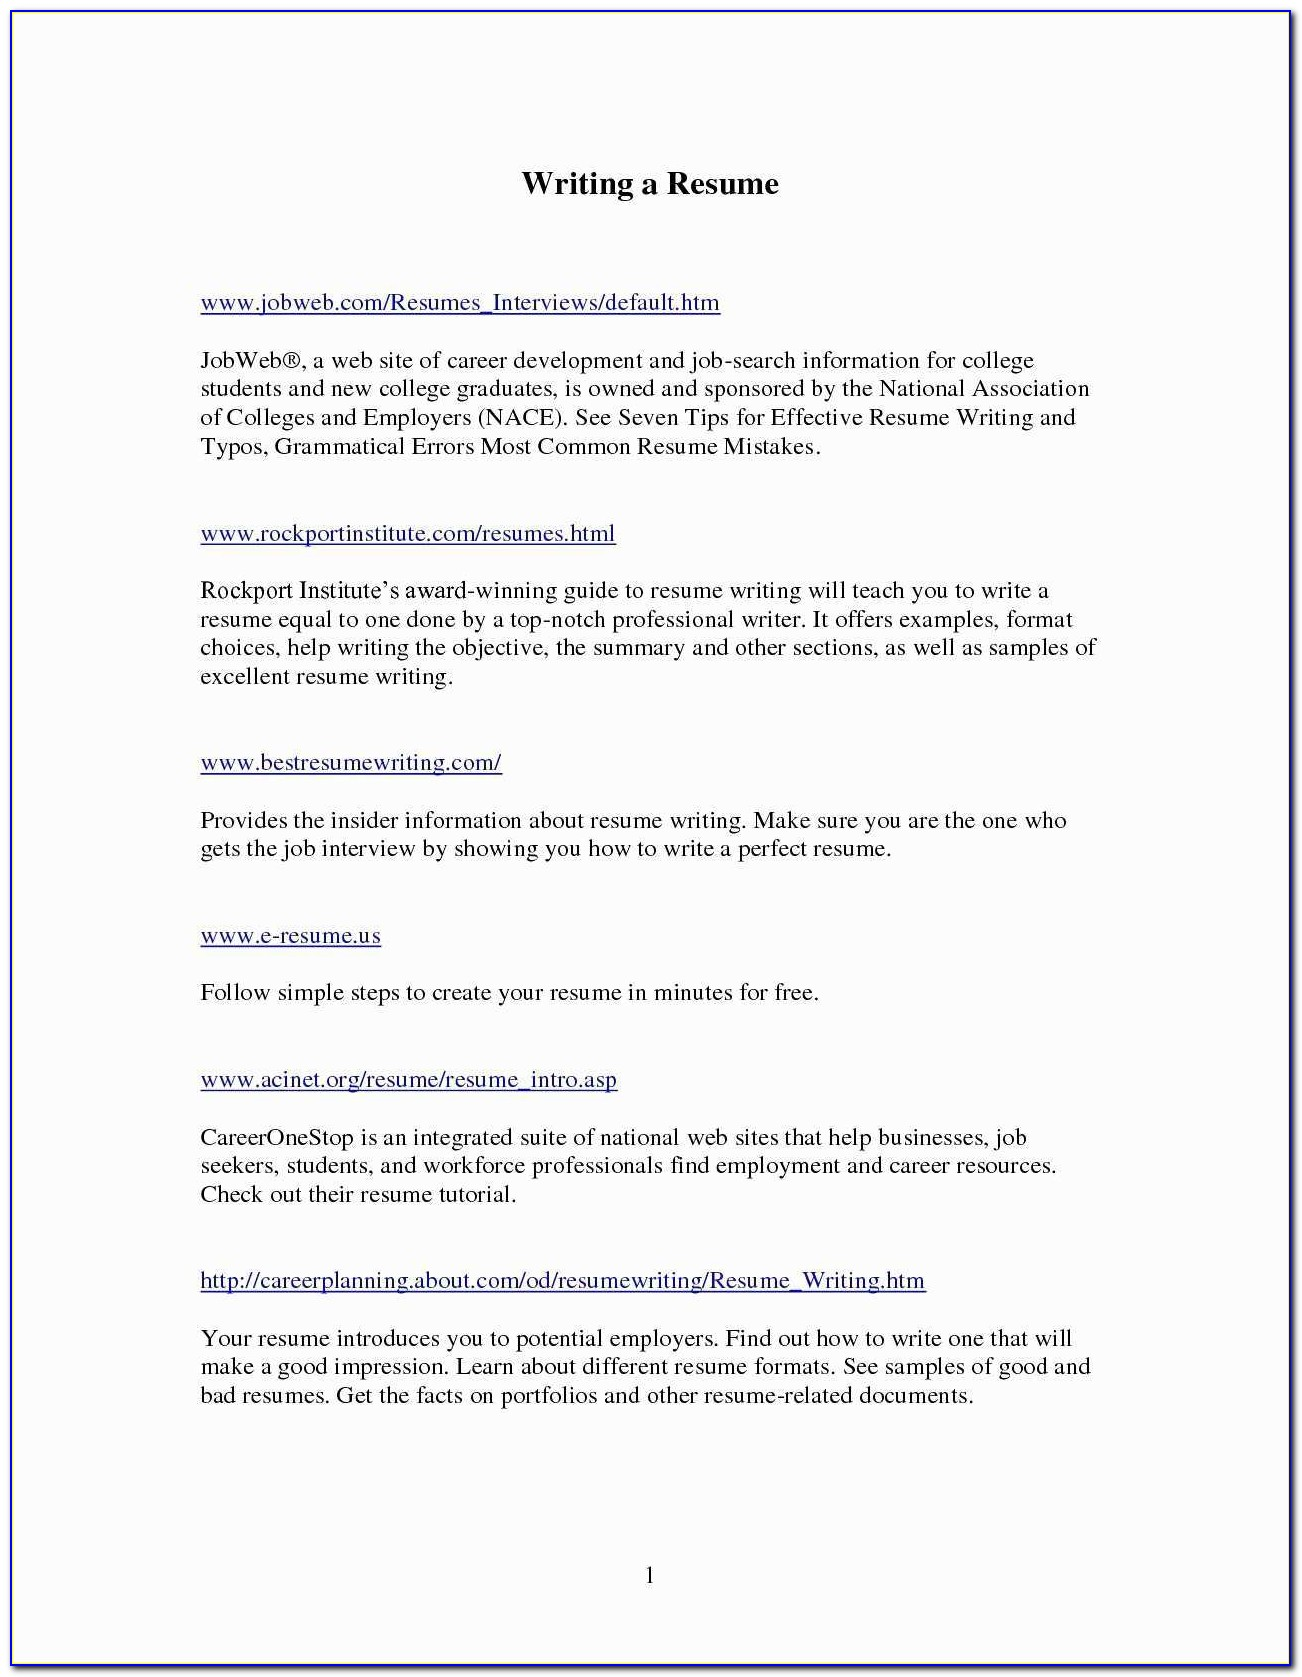 Proper Way To Document A Book In A Resume 22 Awesome Grant Writer Resume Writing Books